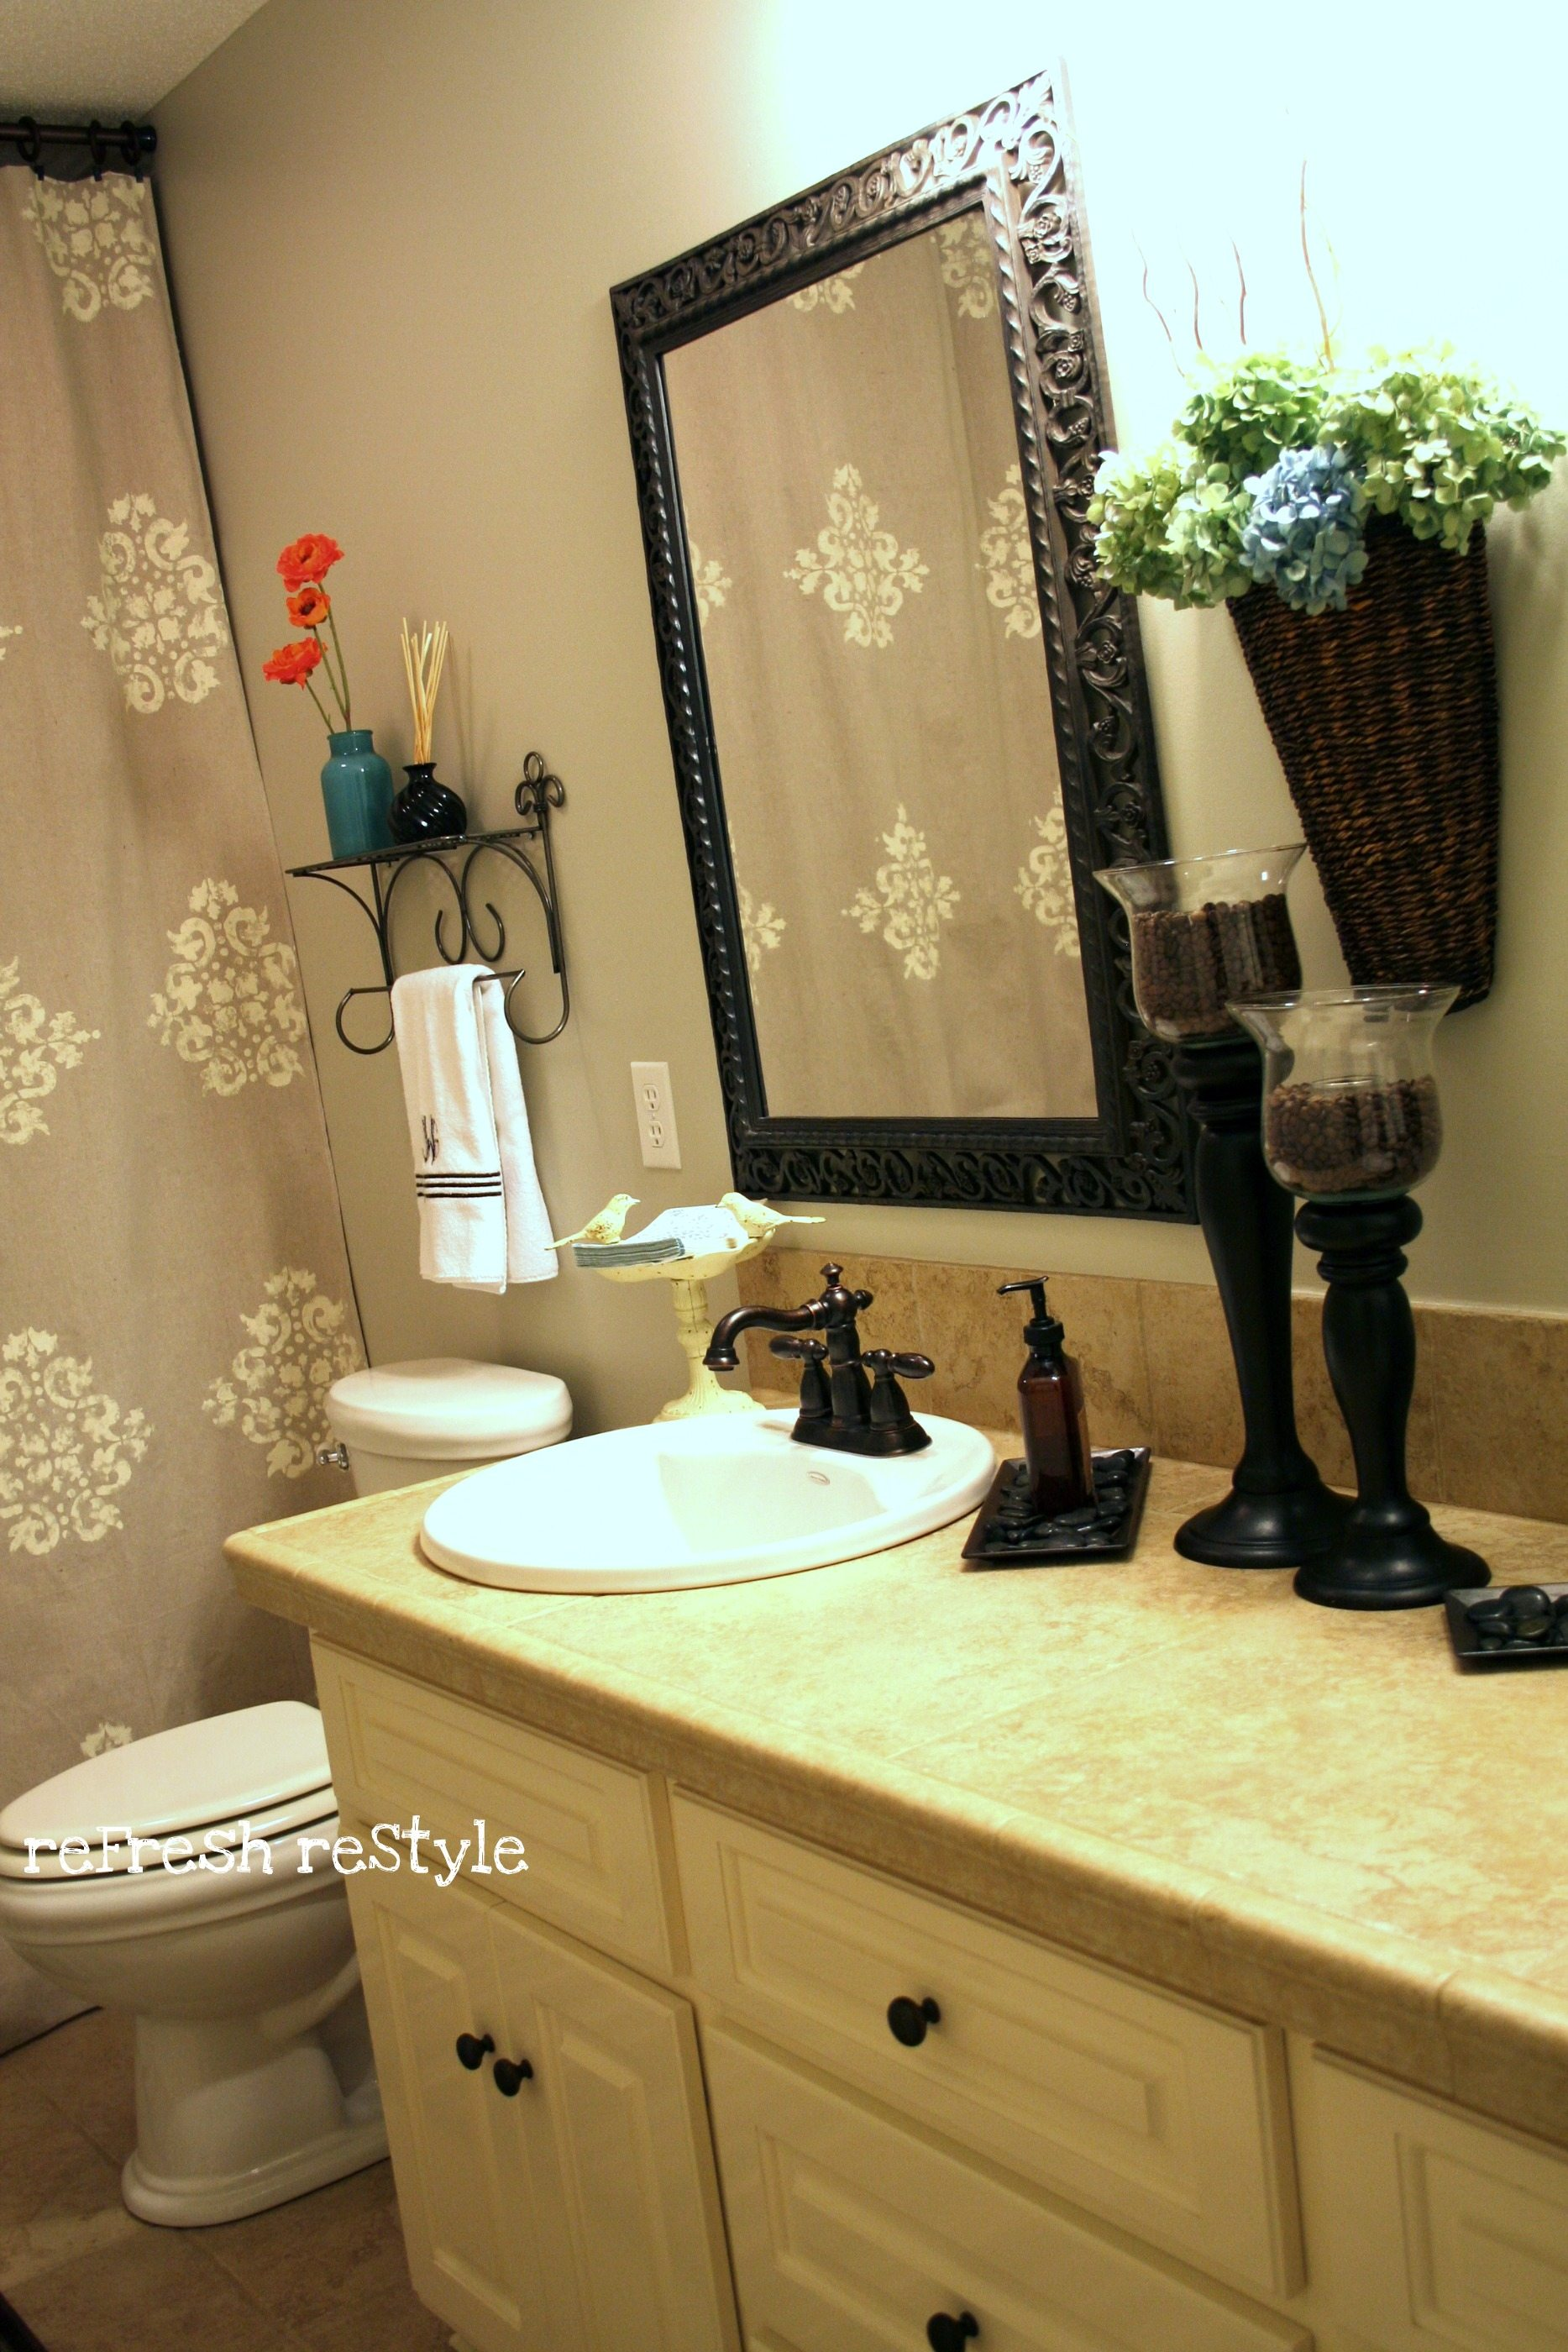 painted shower curtain refresh restyle how to paint a shower curtain made from a drop cloth